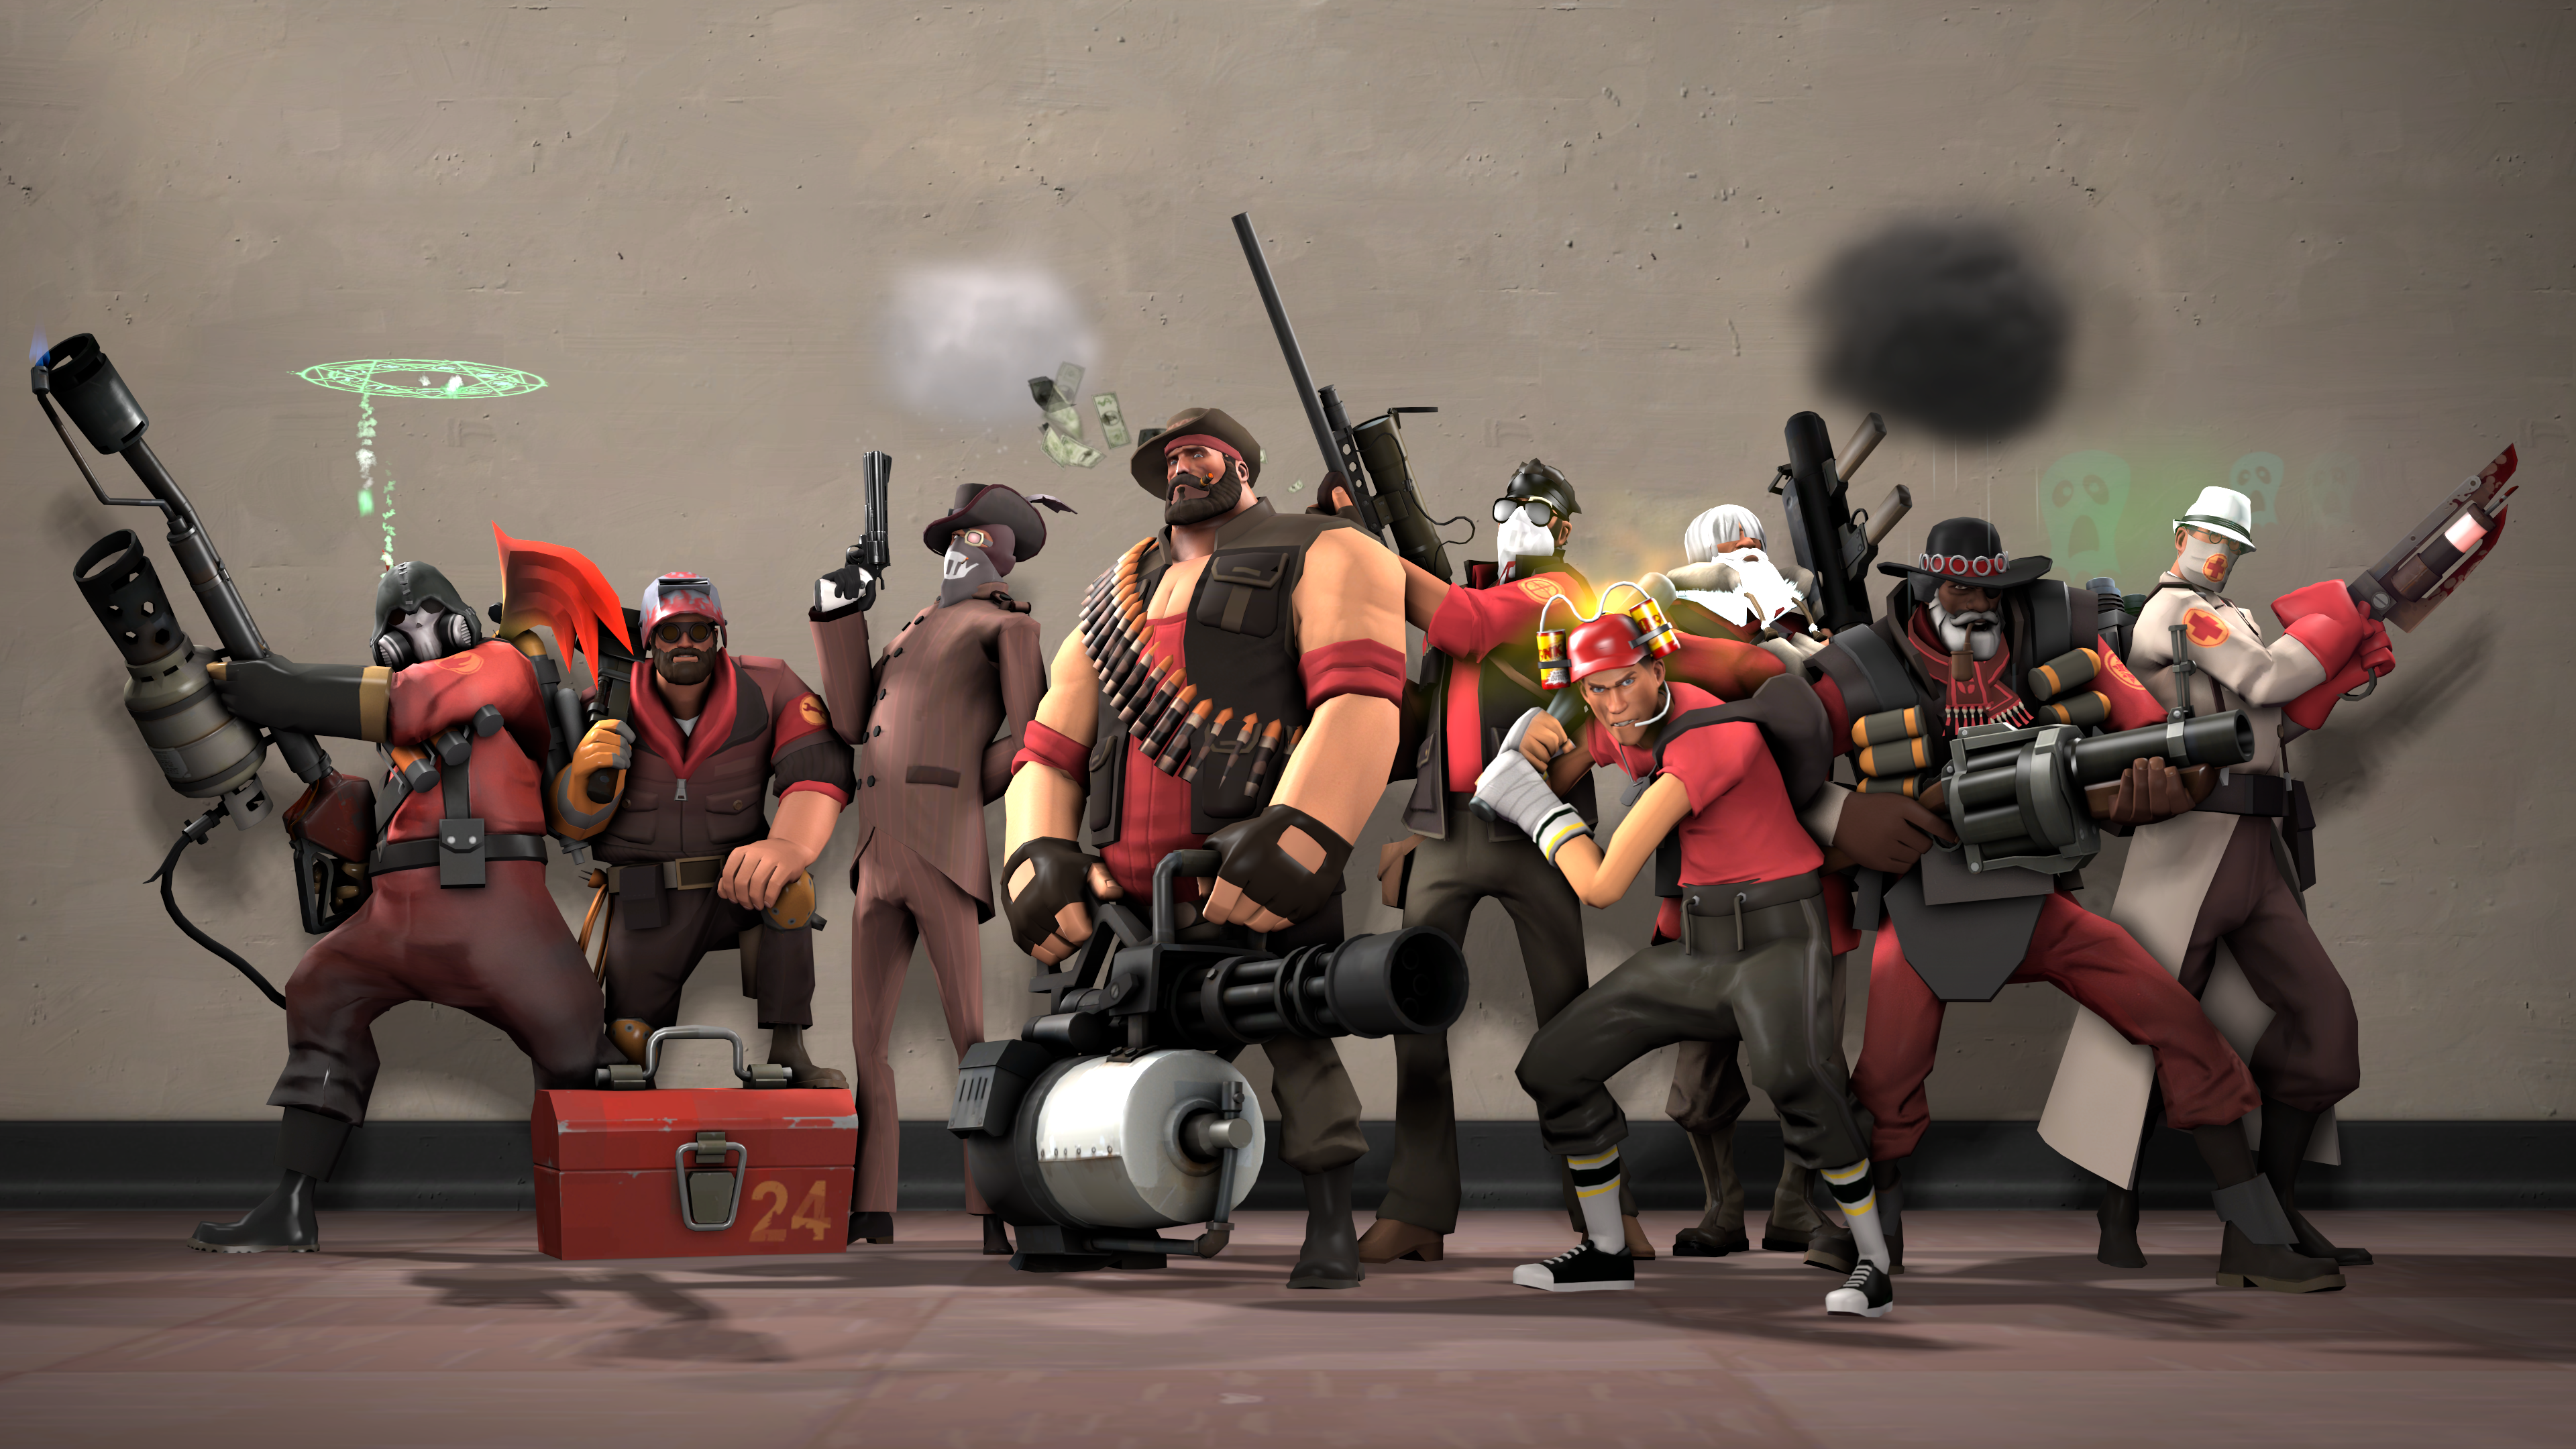 [SFM] TF2 Loadout - Highlander (The Weilanders) by 360PraNKsTer